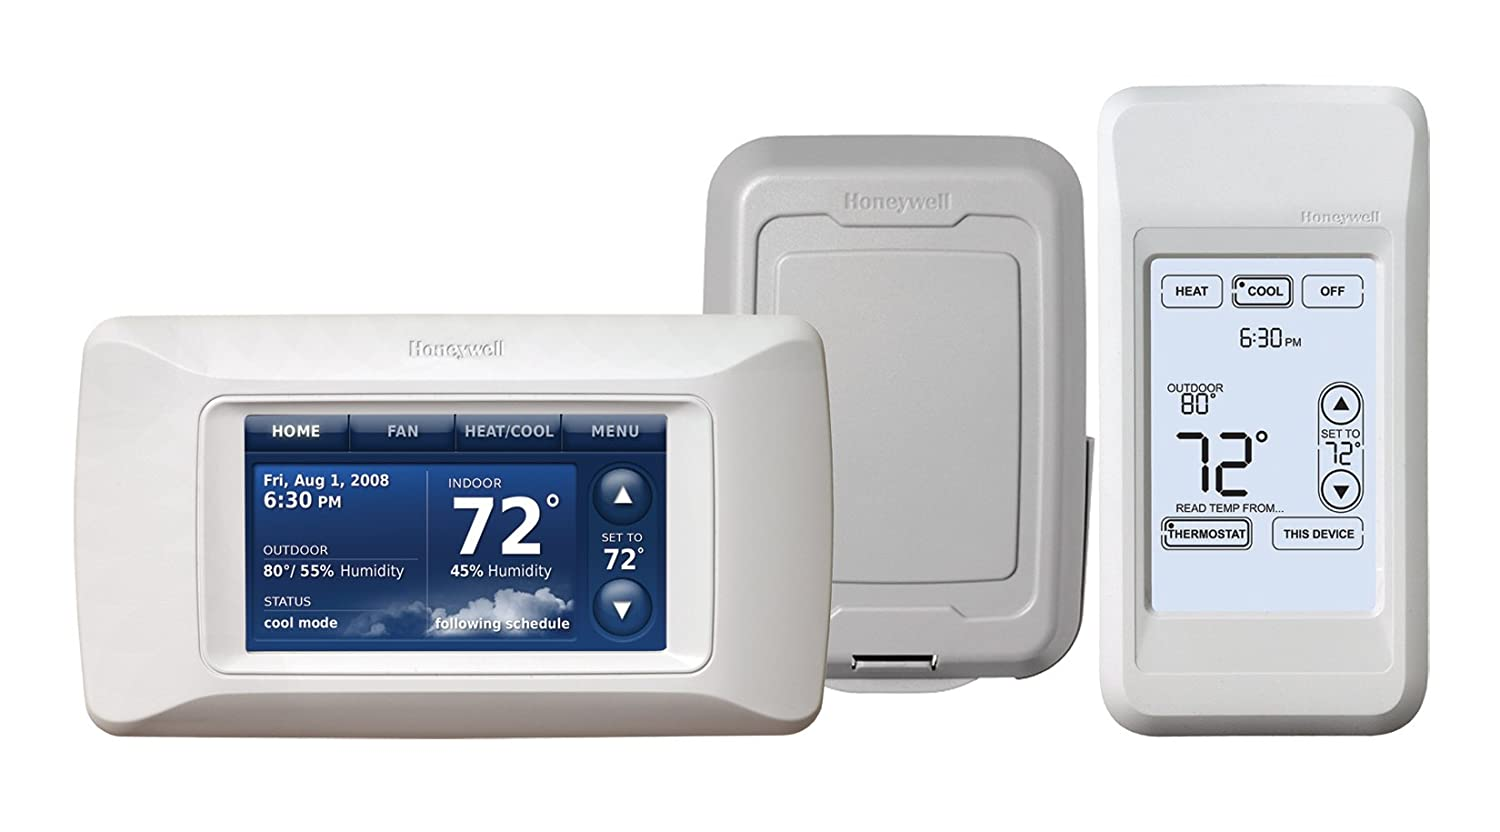 Ythx9321r5003 Honeywell Hd Color System Kit Prestige Erfahrungsbericht Zum Thermostat Rondostat Hr 20e Von Redlink Enabled Includes The Portable Comfort Control Remote Wireless Outdoor Temperature